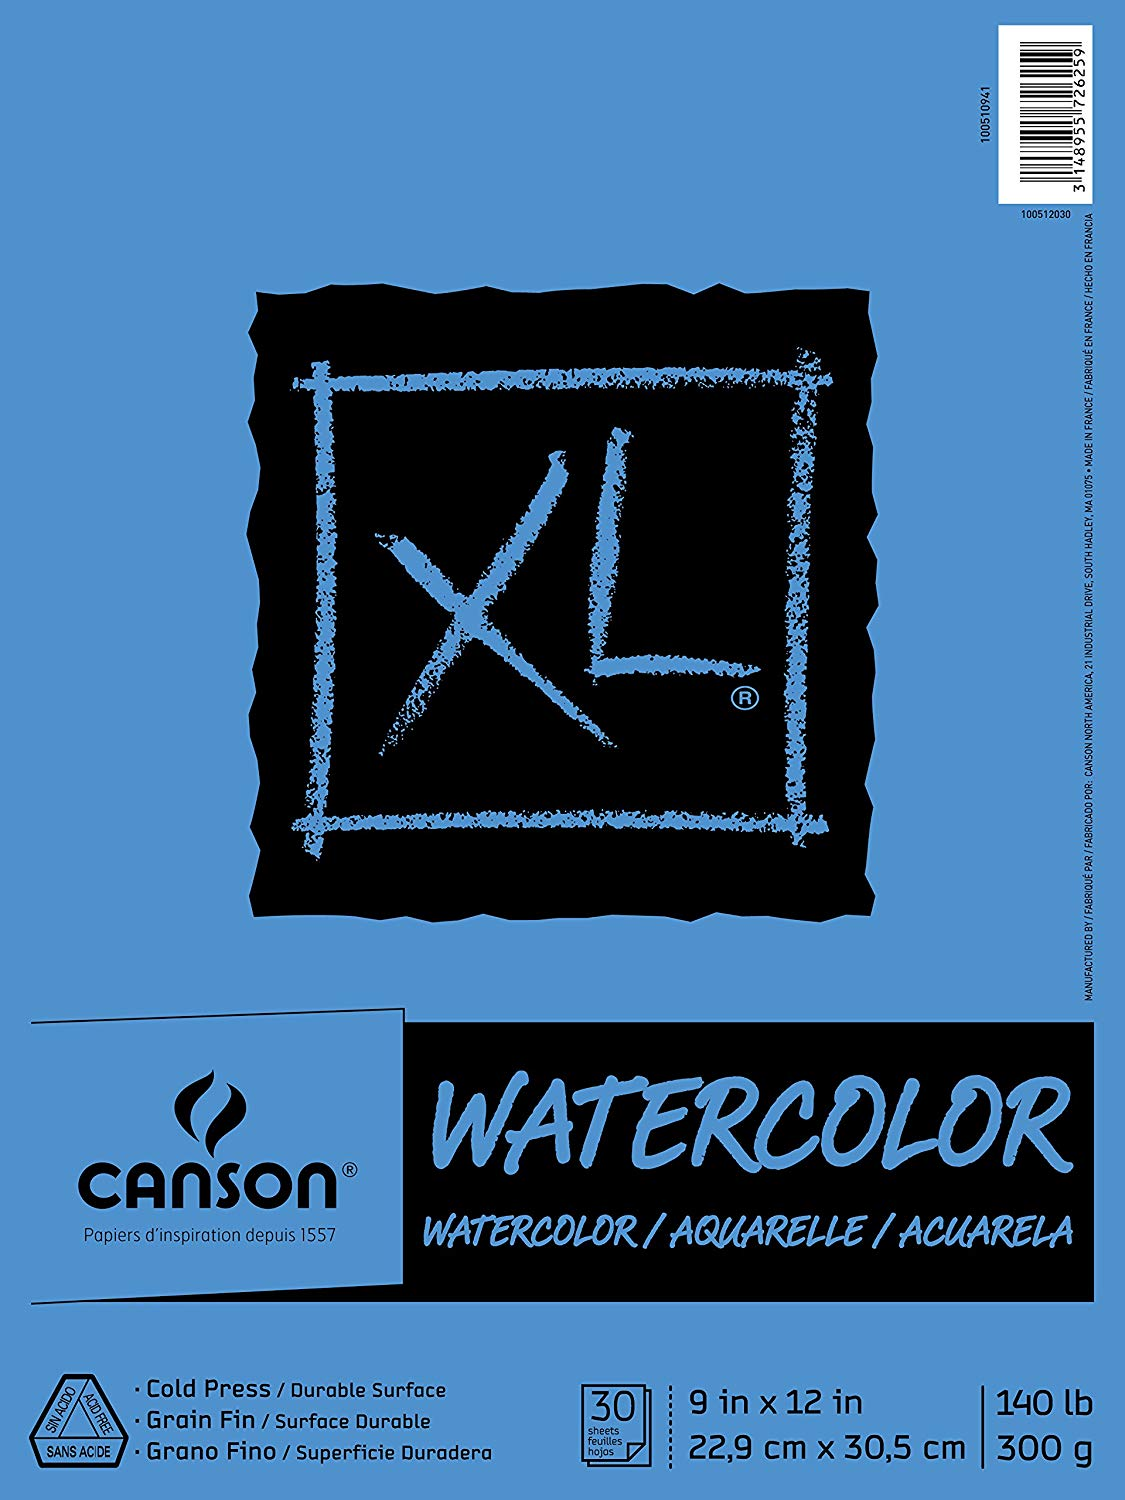 Canson Watercolor Textured Paper Pad